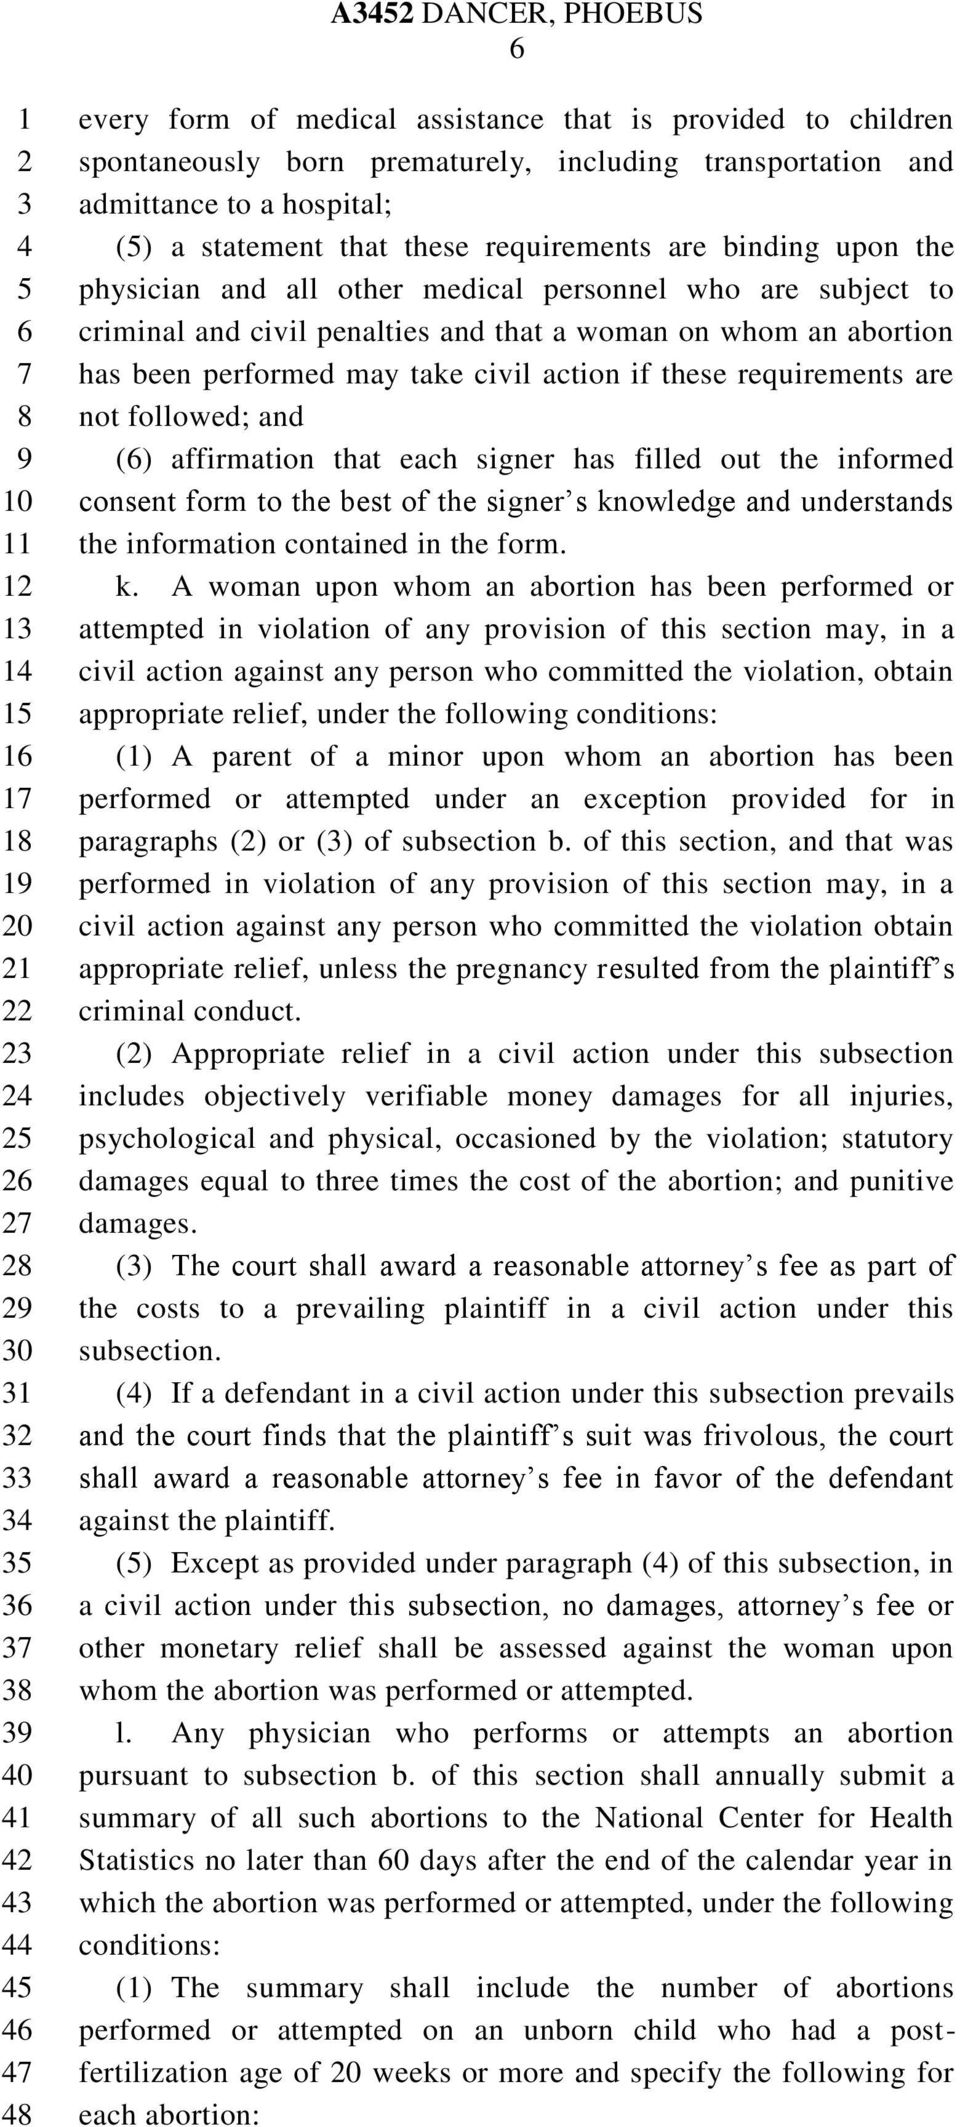 age of consent act 1891 pdf